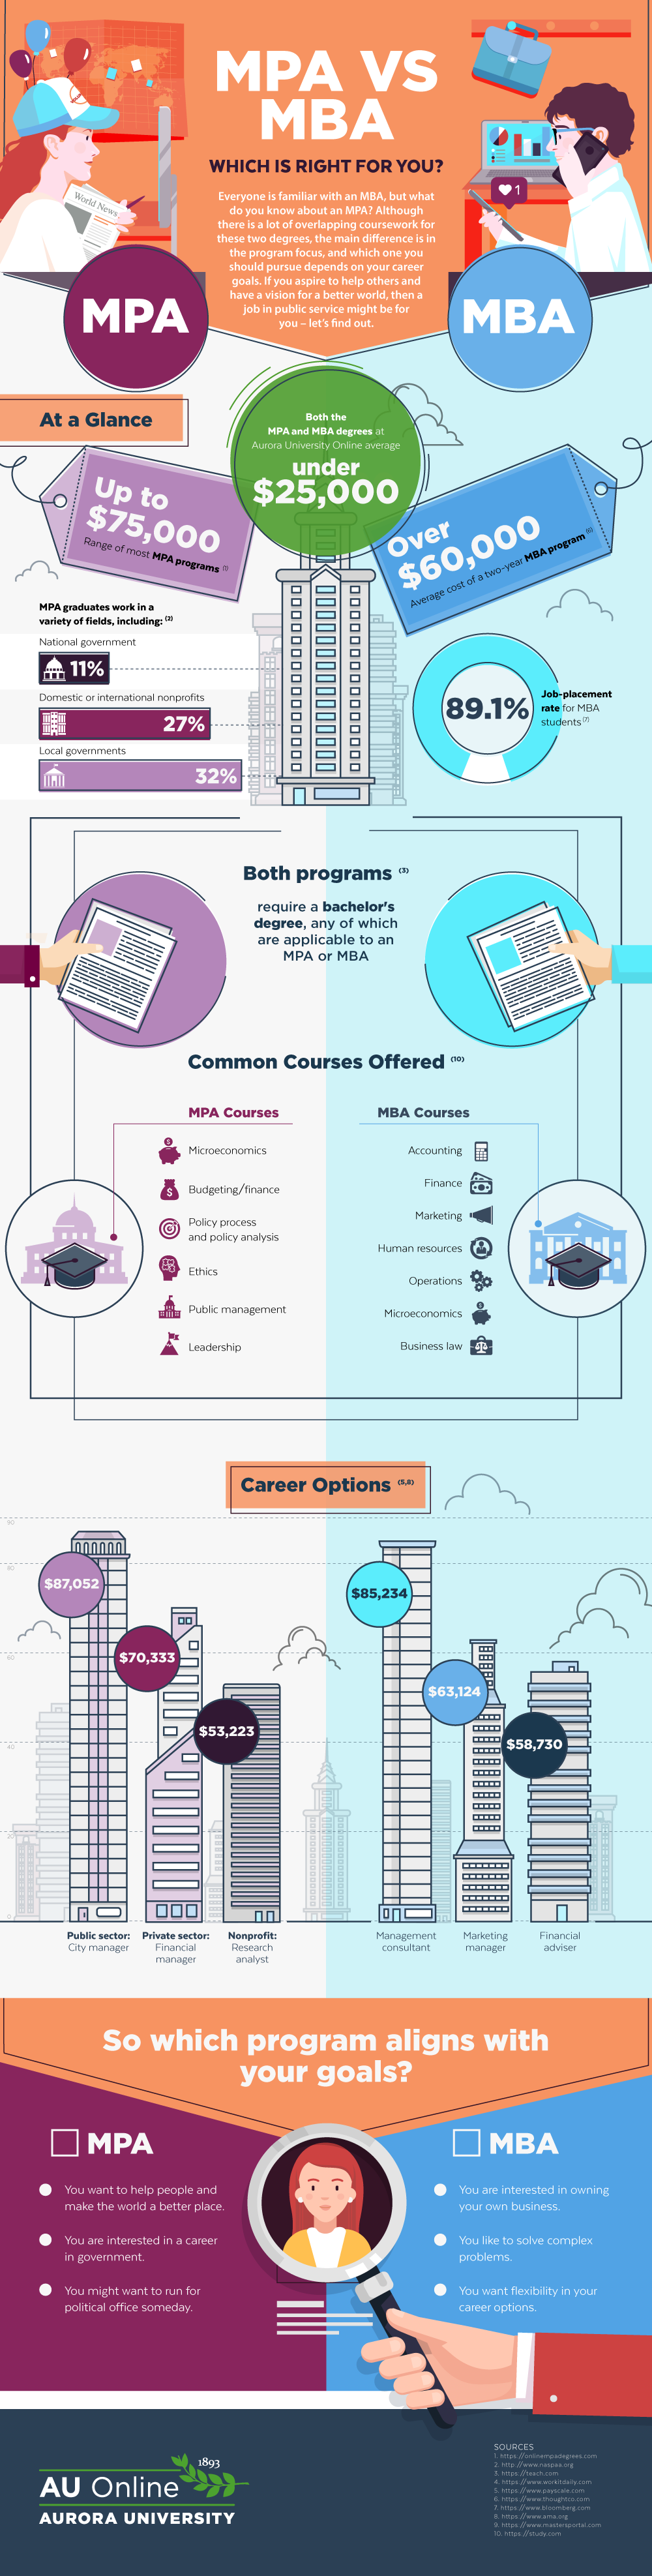 MPA vs MBA Infographic | AU Online